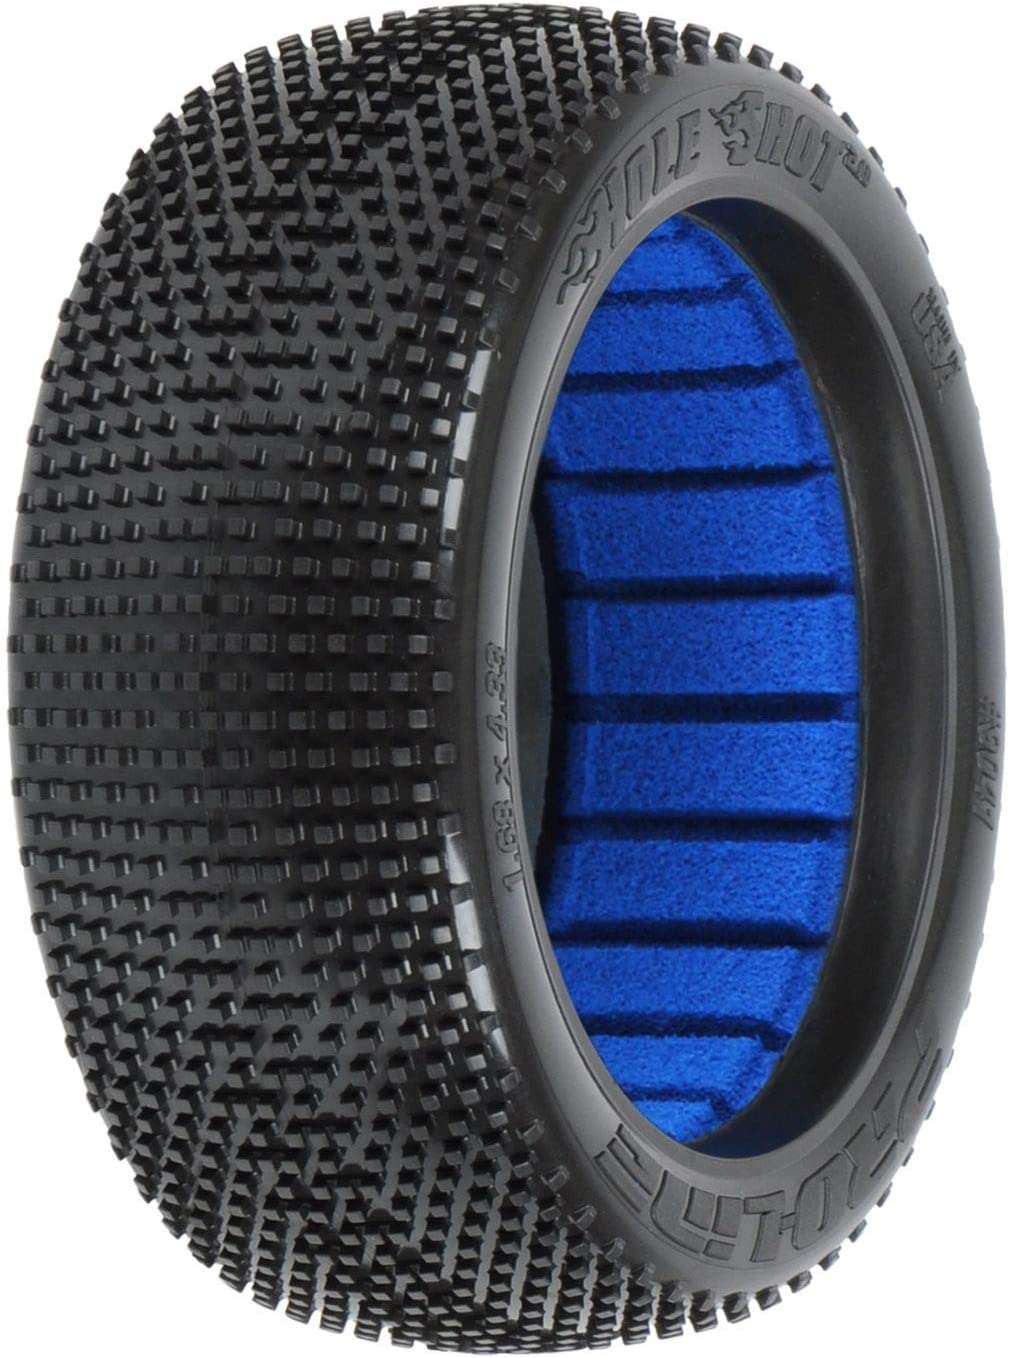 Pro-line Racing 1//8 Hole Shot 2.0 S3 Soft Off-Road Tire Buggy 2 PRO9041203